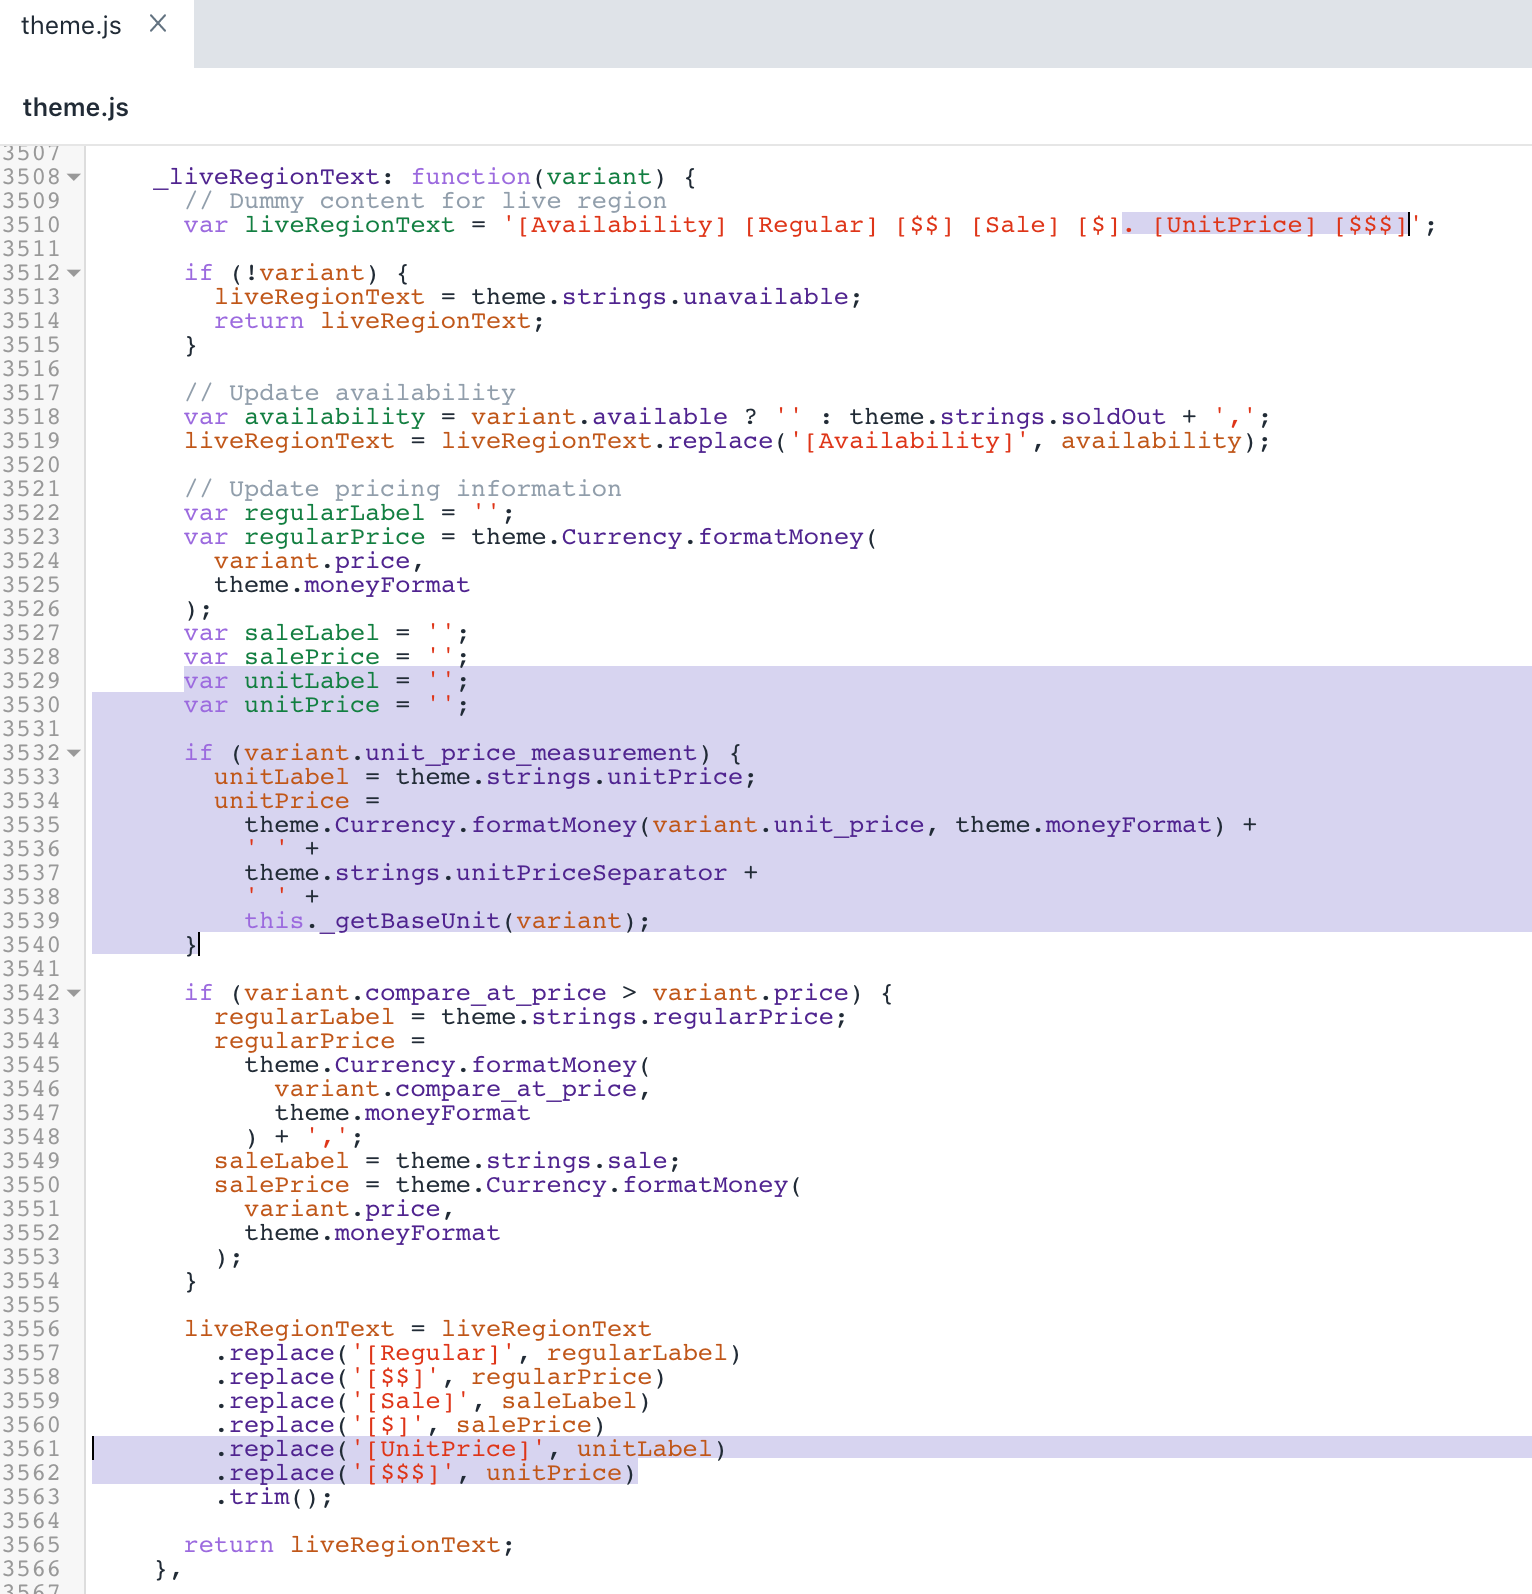 The updated version of the theme.js file